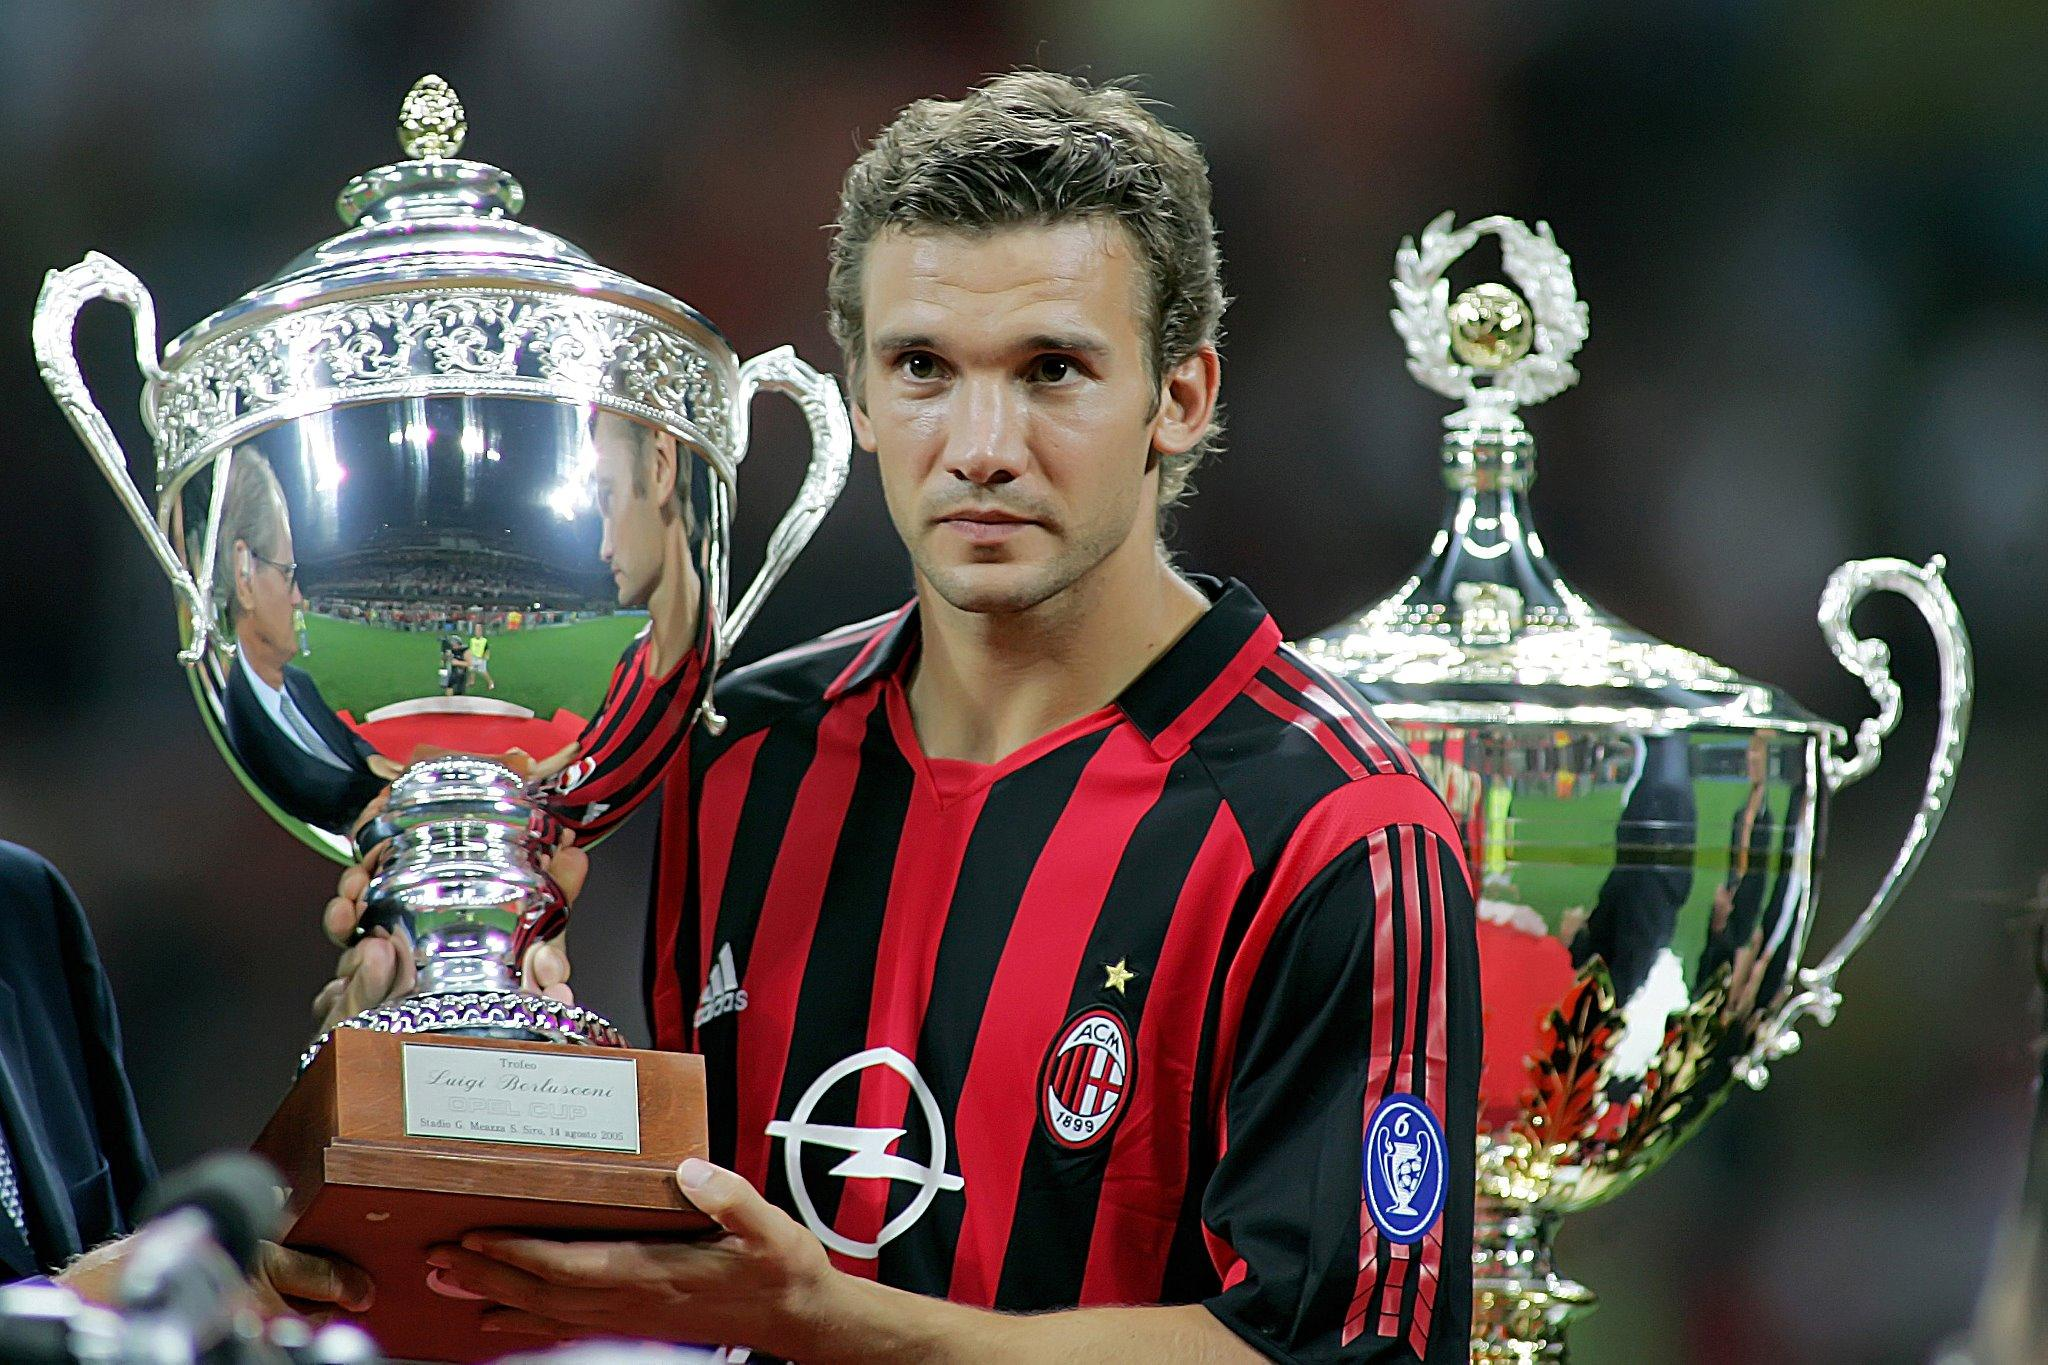 Andriy Shevchenko Naked top-10 athletes who made ukraine famous - guide me ua